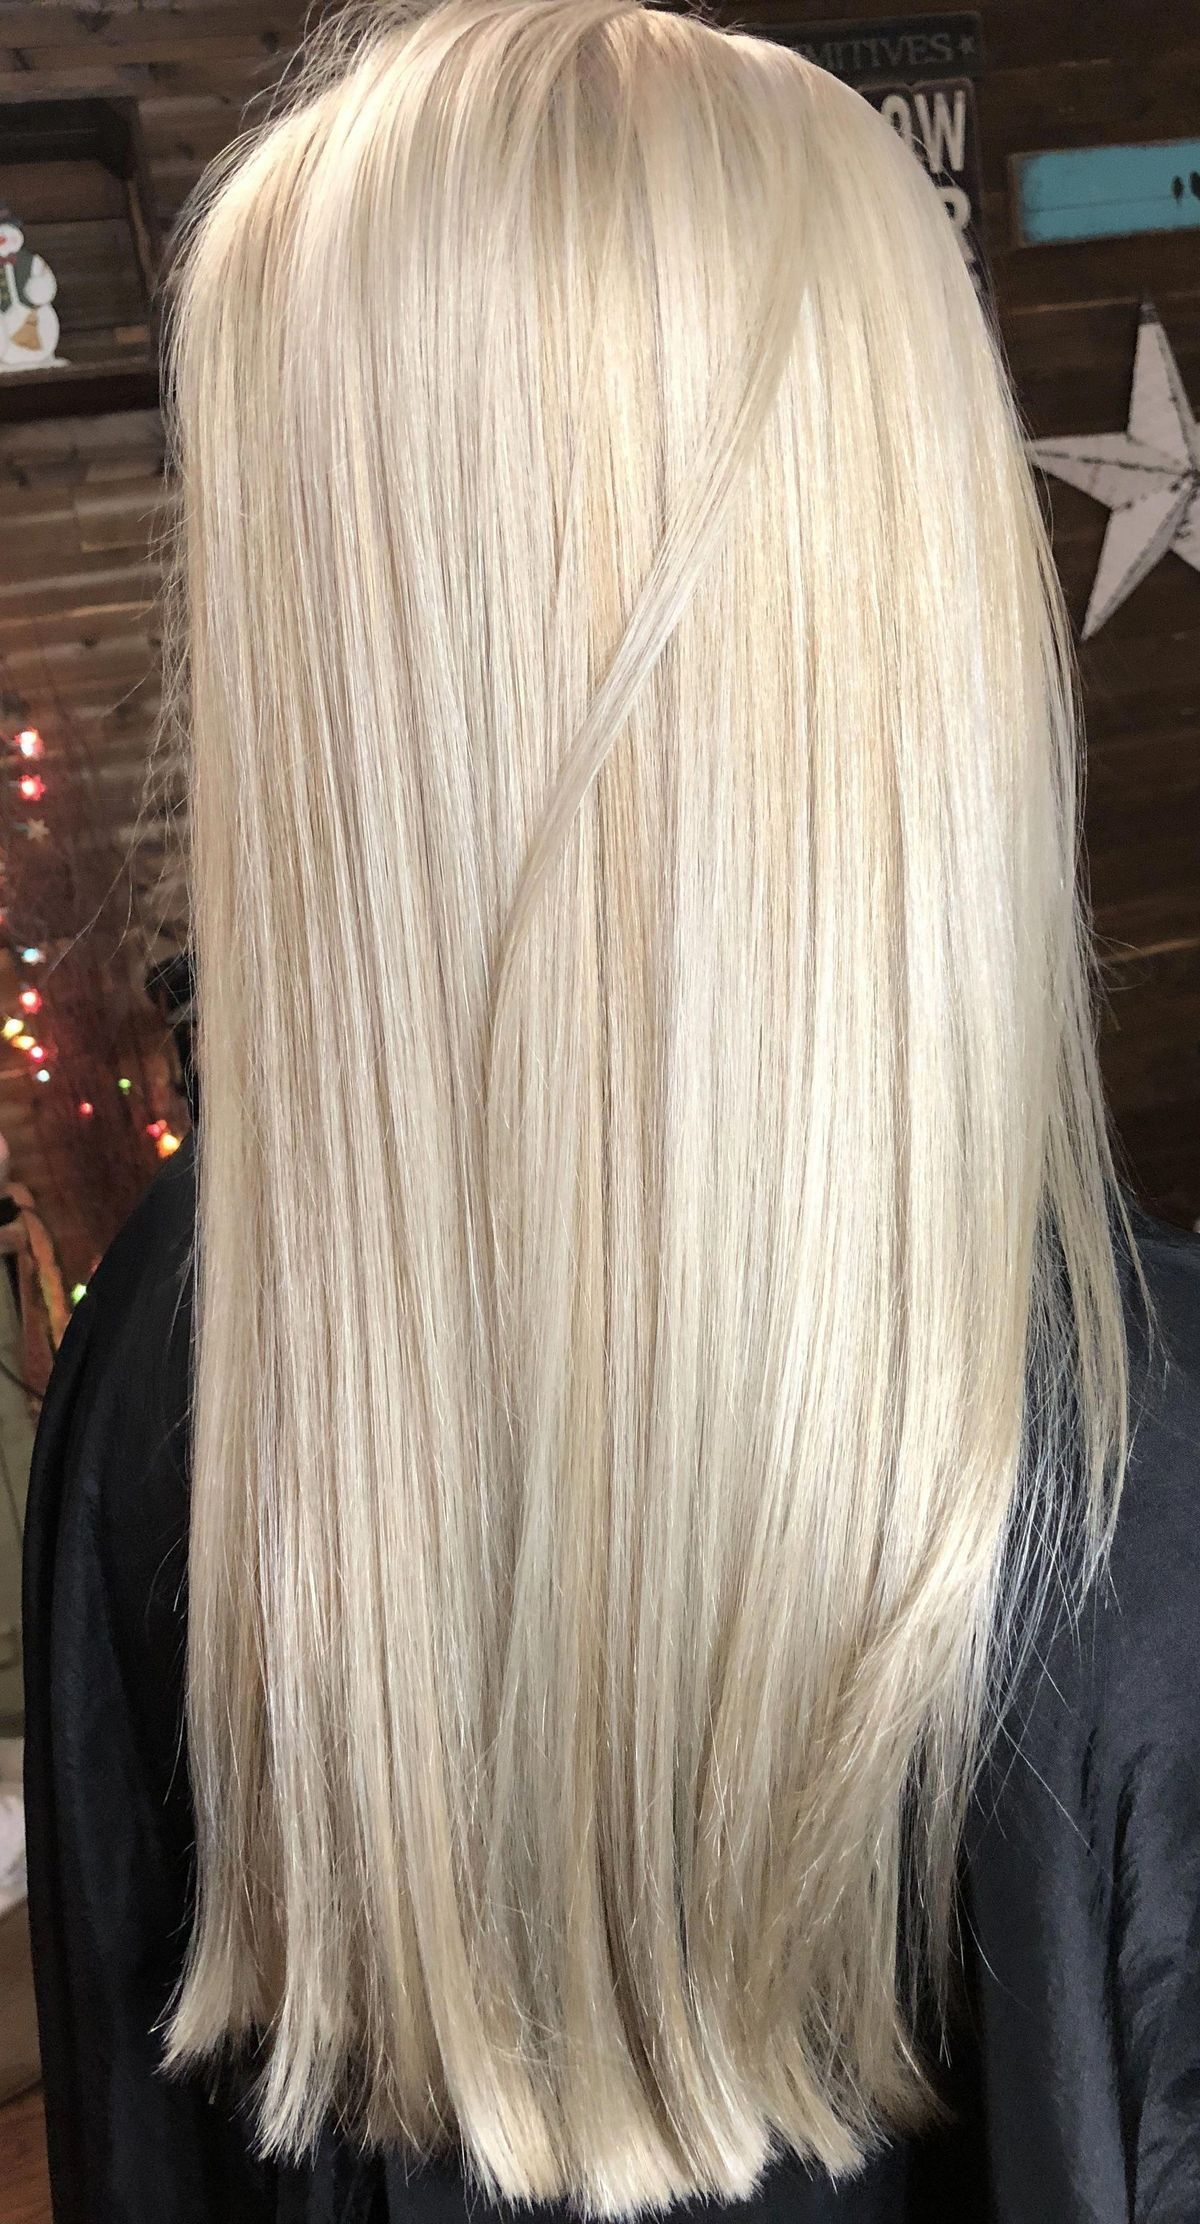 Clairol Shimmer Lights Shampoo for Blonde and Silv